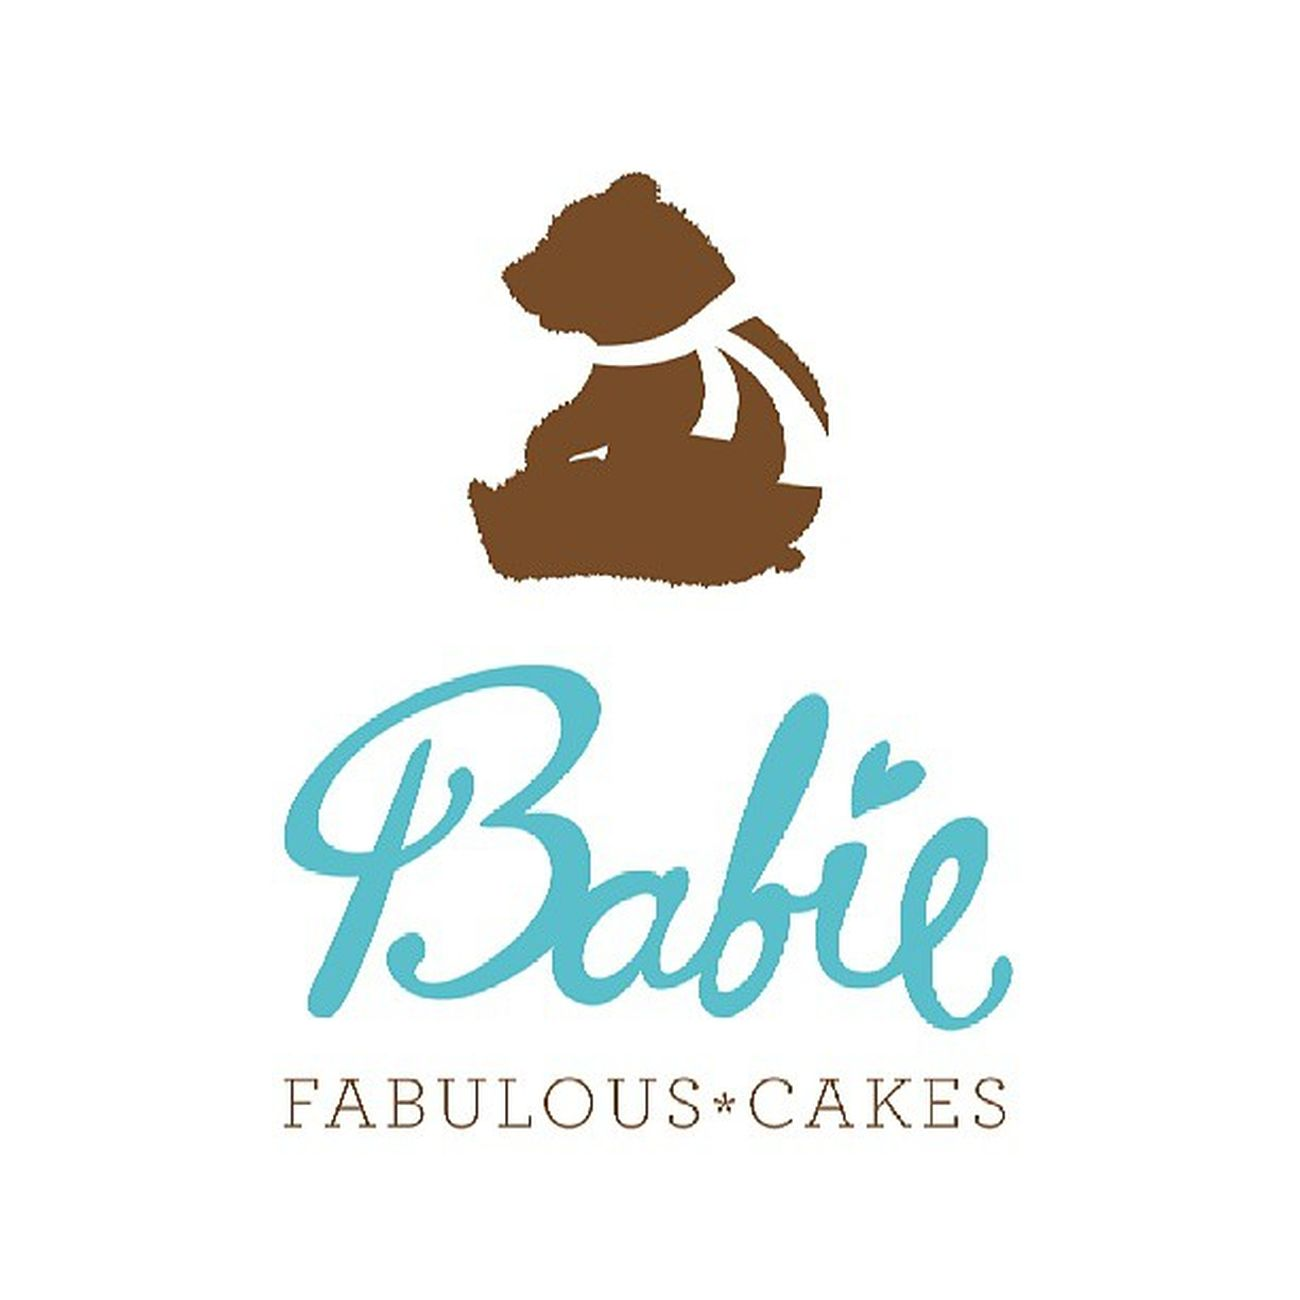 Simply hello from Babie (maskot of Babie Fabulous Cakes) ツ Cakes Fabulous Cupcakes Cakepop fruitcakes sweetcakes birthdaycakes event party birthday sweet17th weddingcakes mingle chocolate by contact me at line : shearenkwan or email: shearenkwan@gmail.com